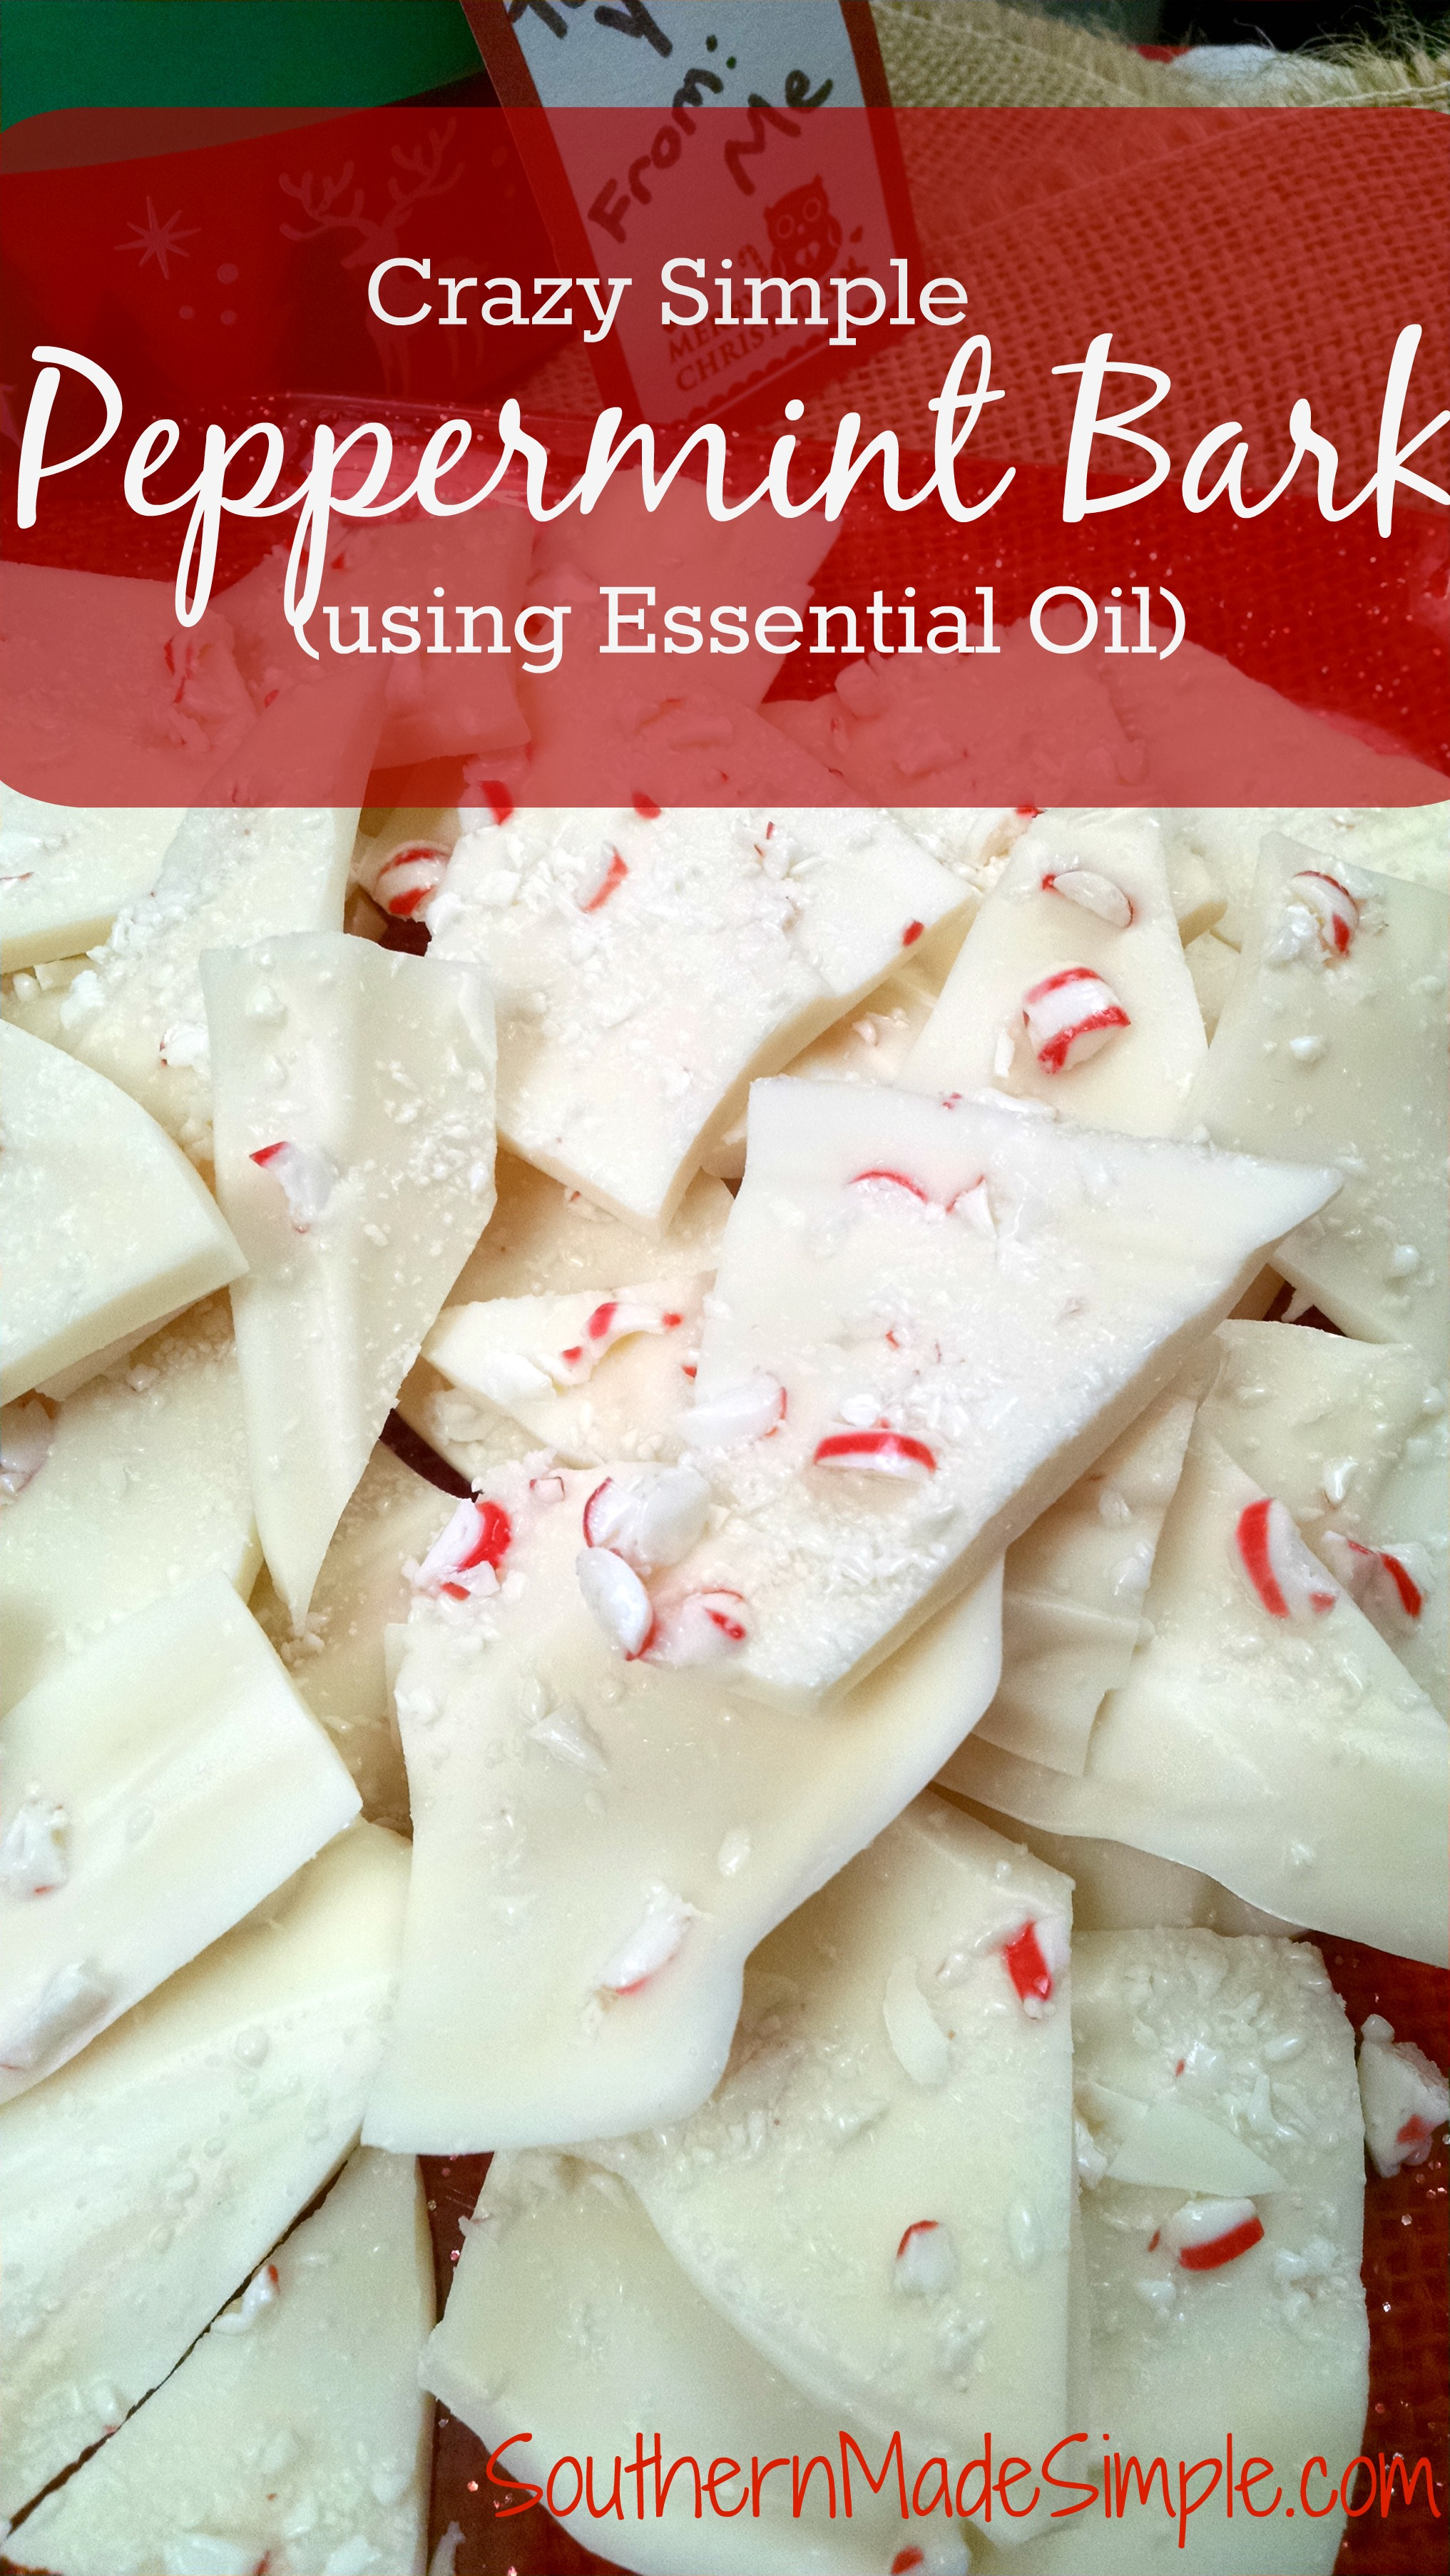 Crazy simple peppermint bark easy peppermint bark recipe using peppermint essential oil forumfinder Image collections